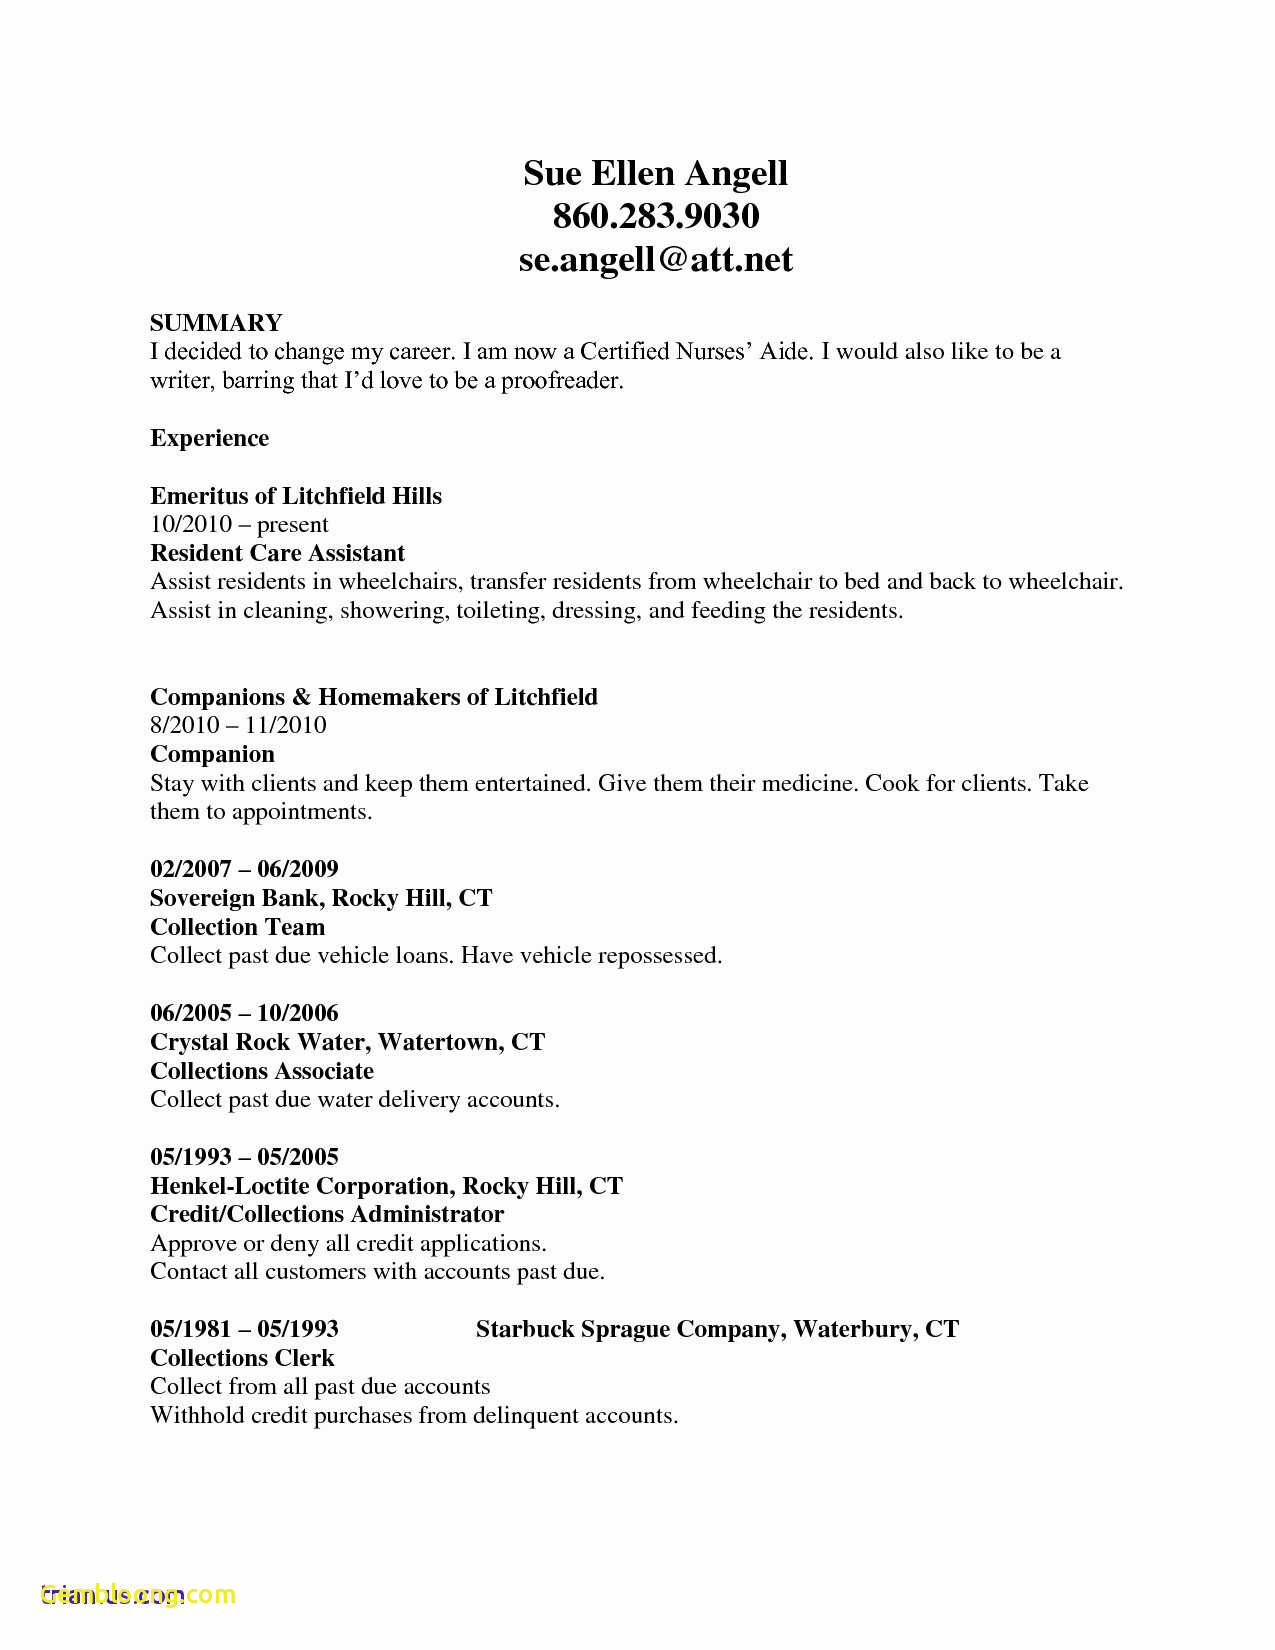 Resume Examples Online - Download Lovely Resume Examples Cna